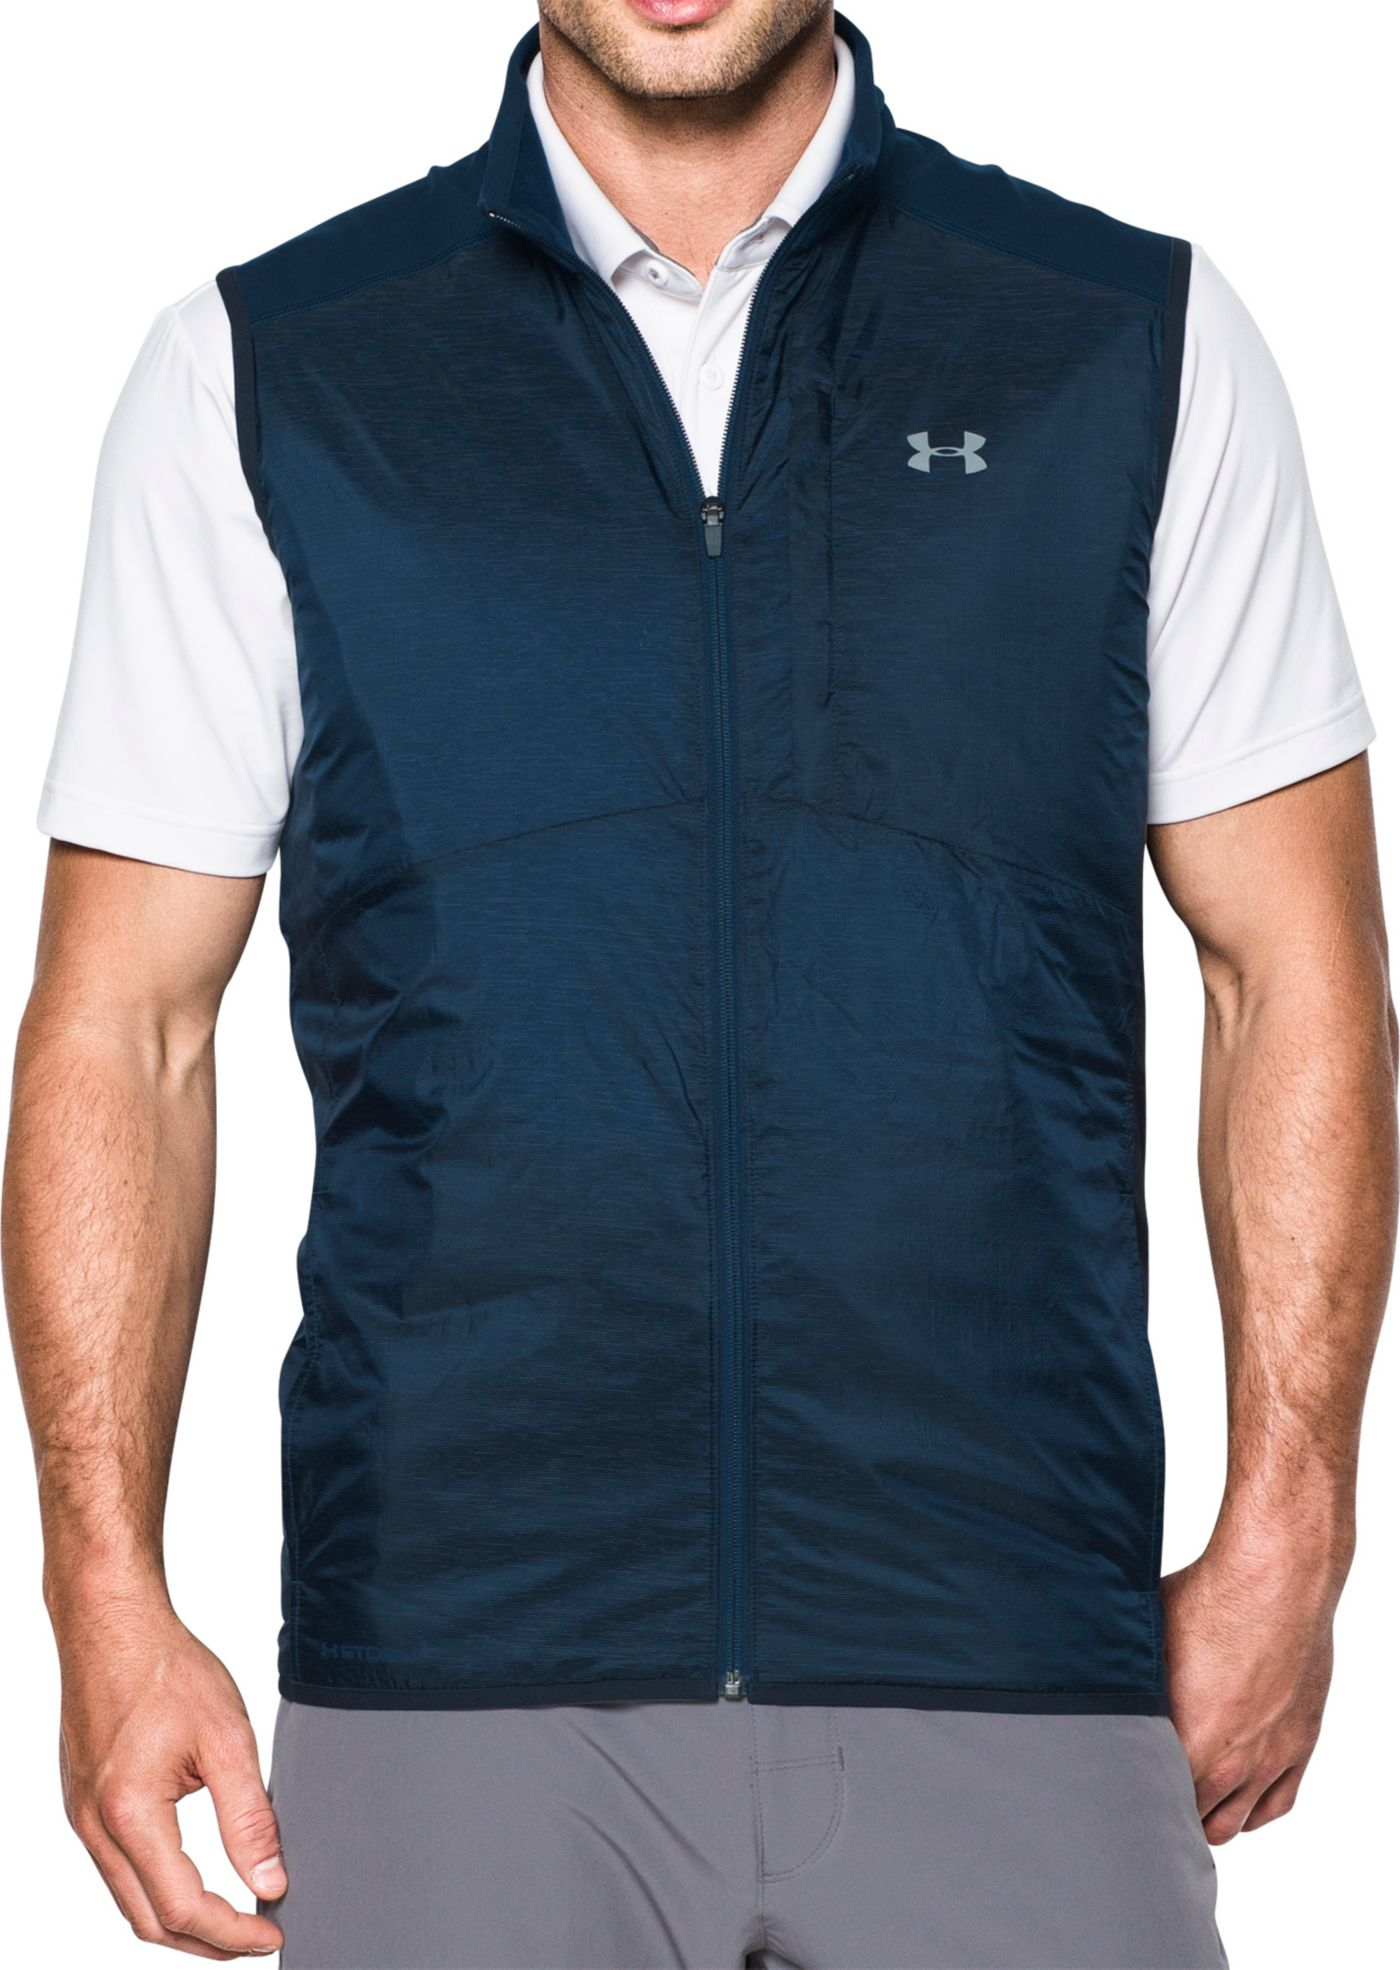 Under Armour Men's CGI Insulated Golf Vest